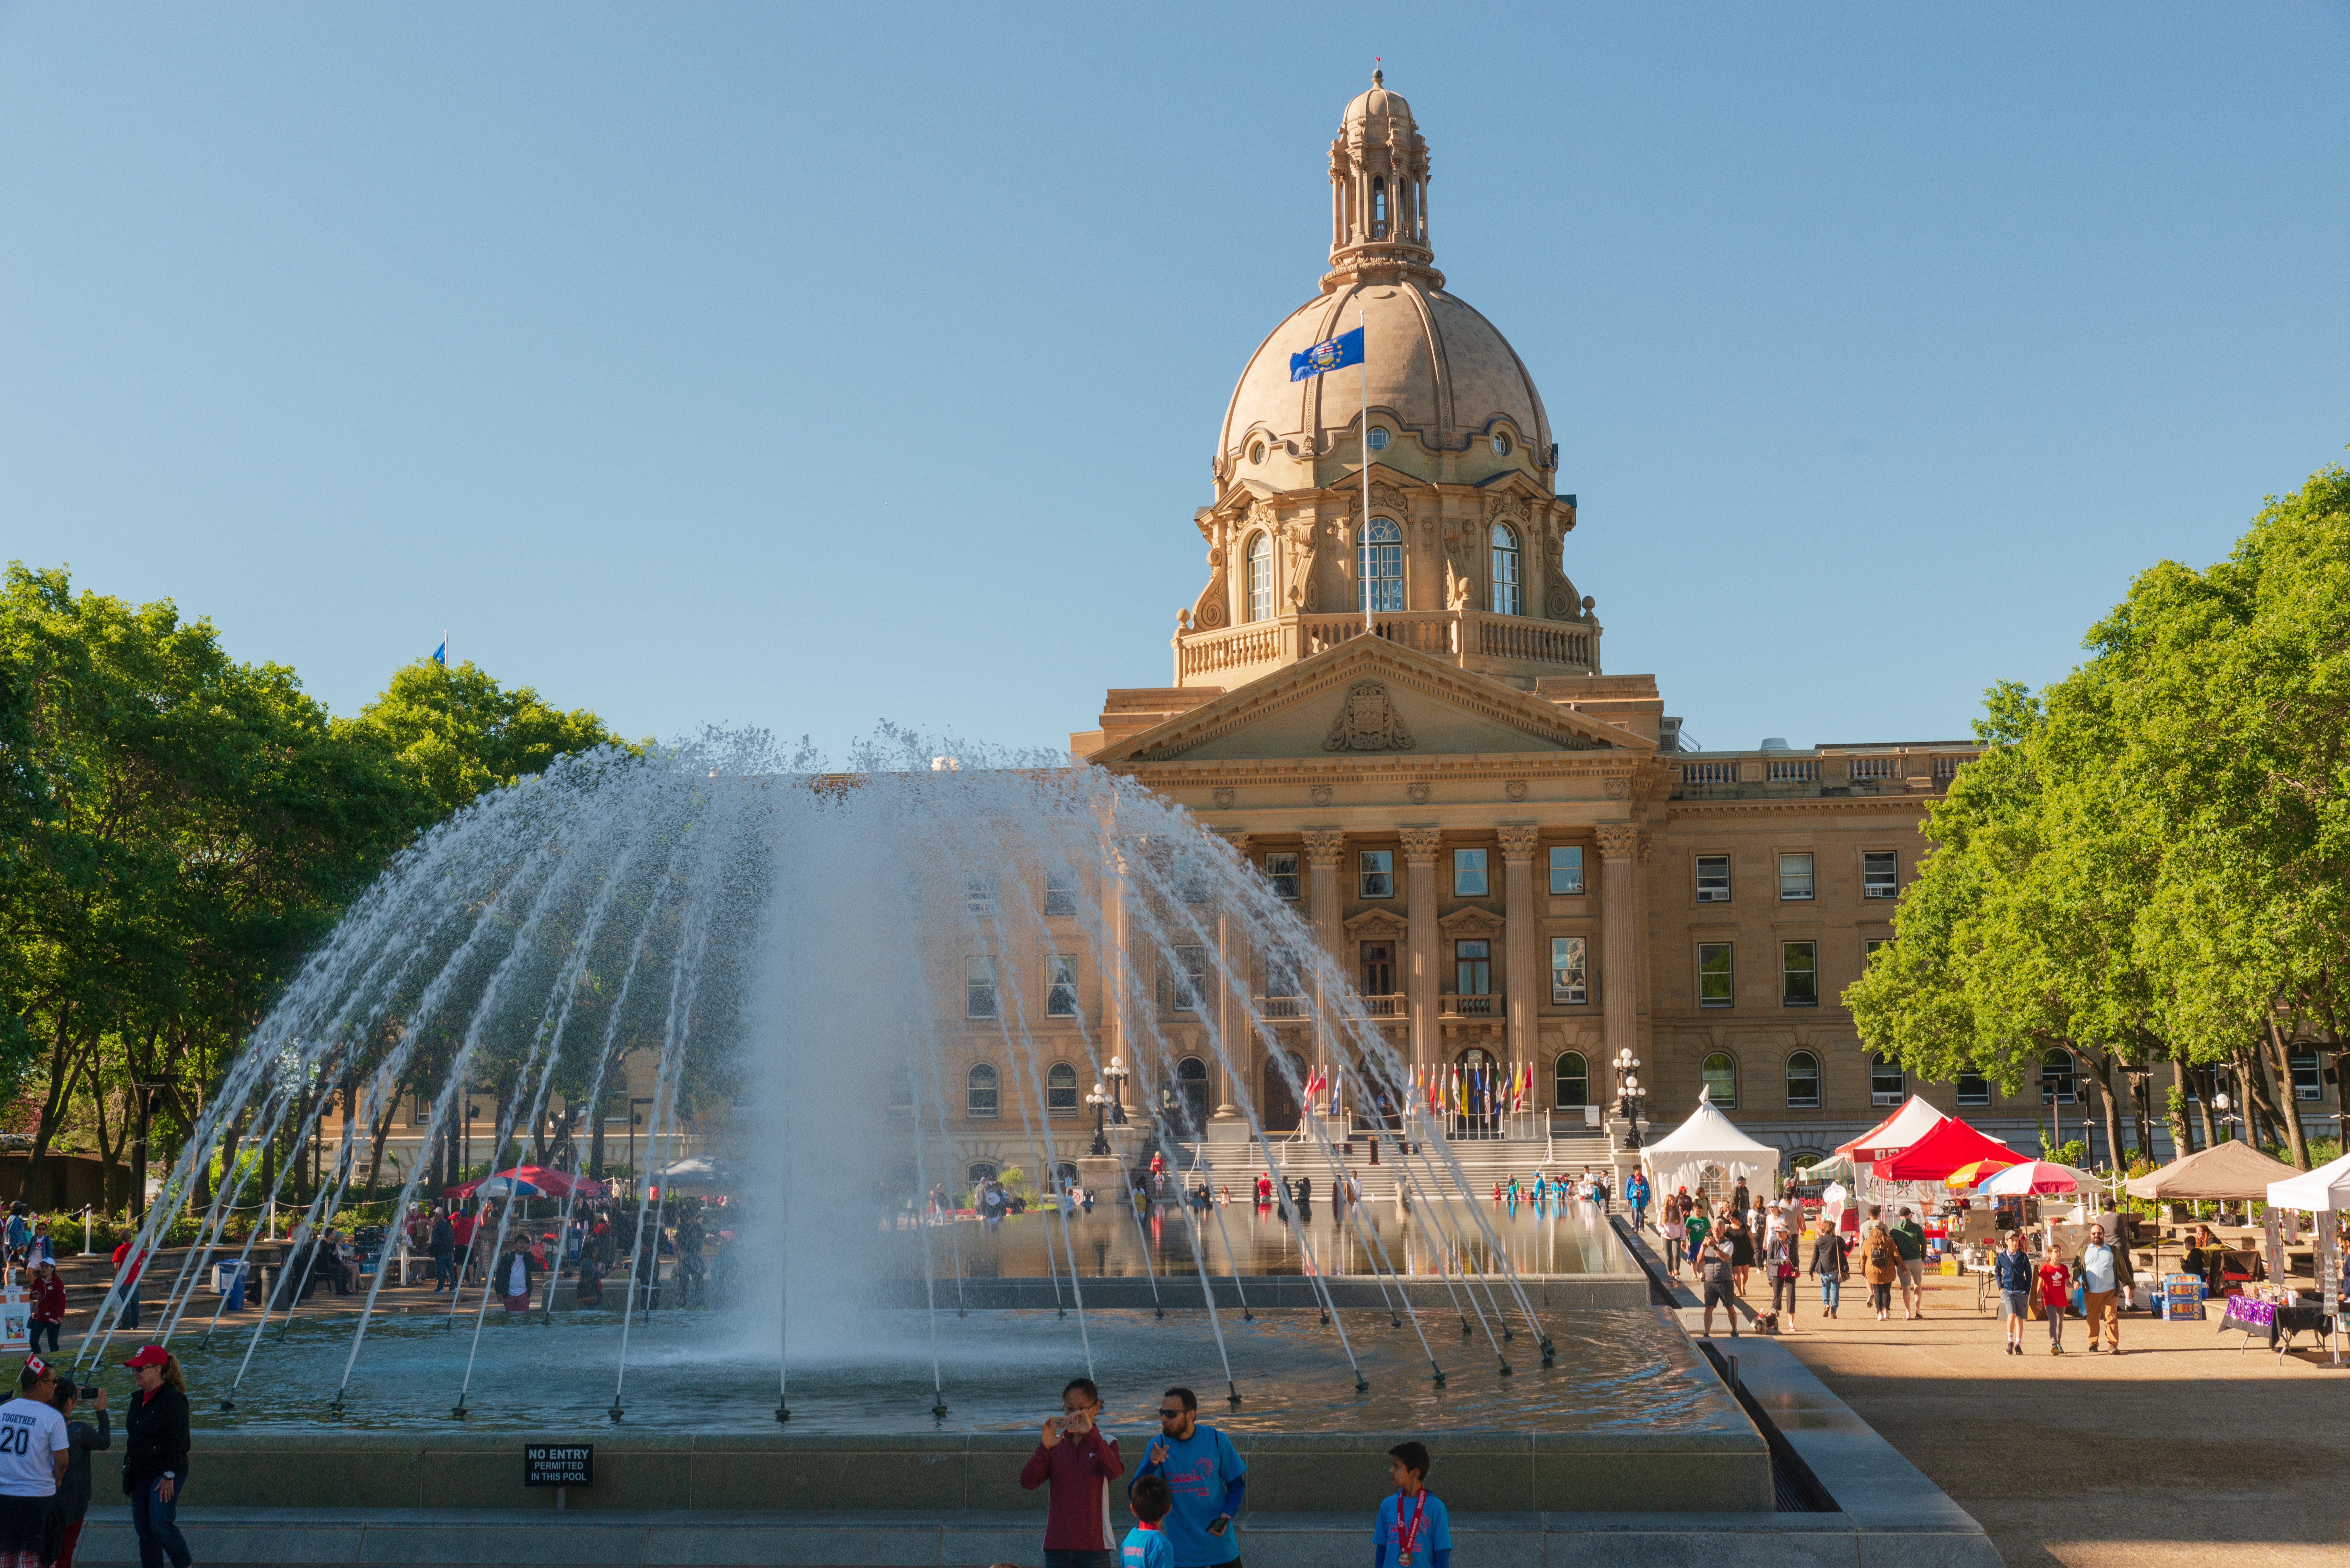 Alberta Legislature Ground, Edmonton, Canada